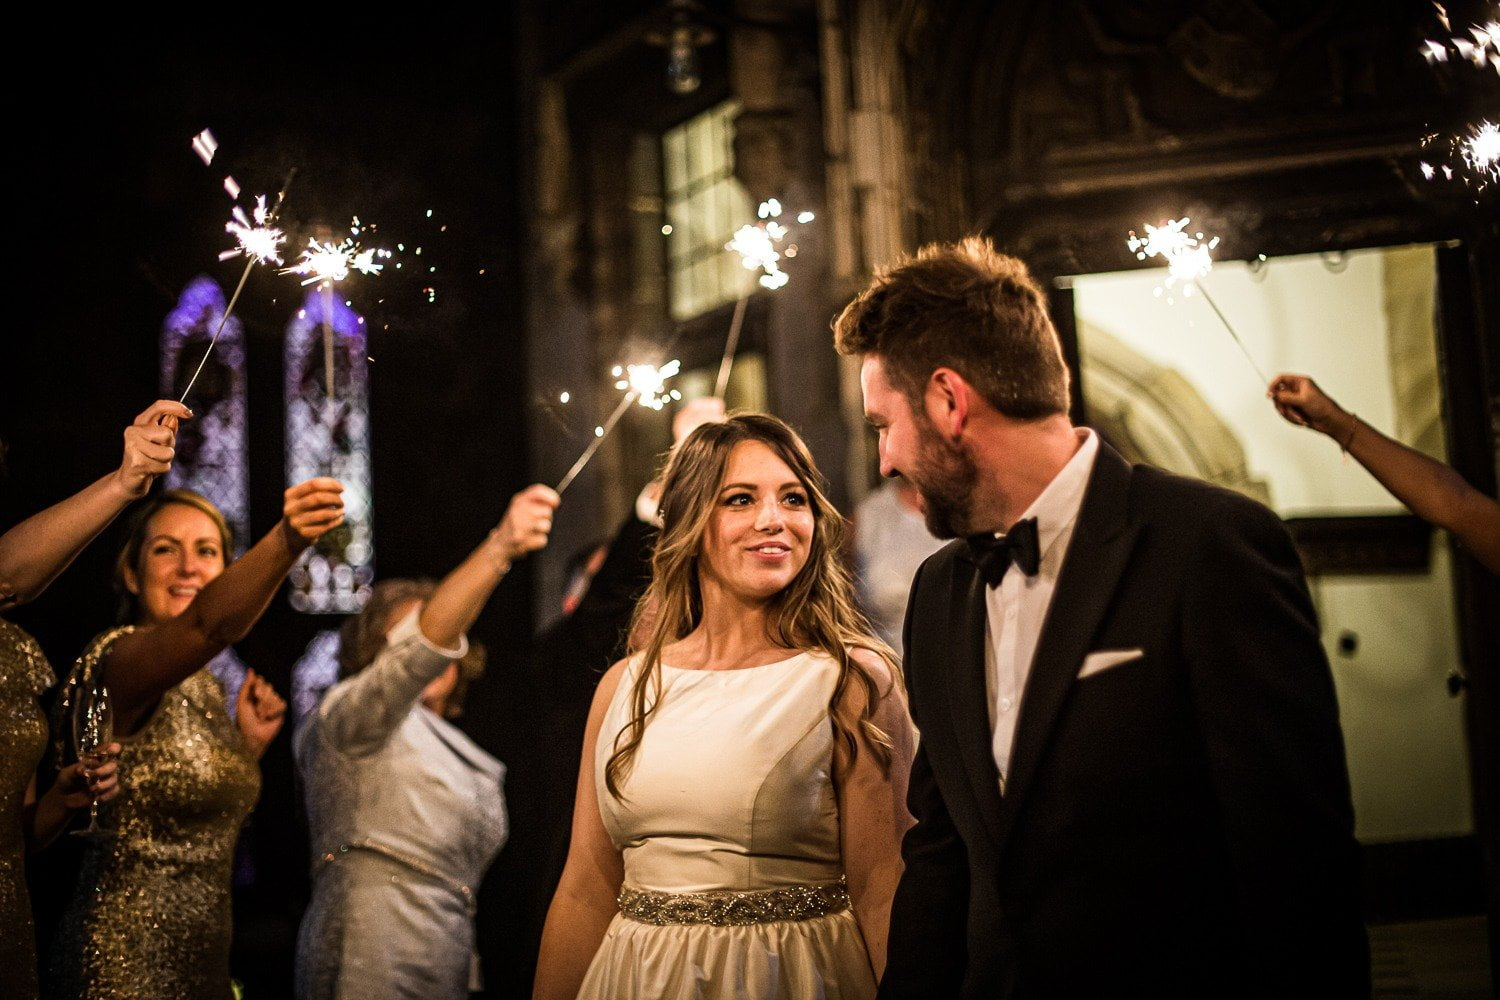 sparklers at a wedding - Wedding Photographer in Lancashire